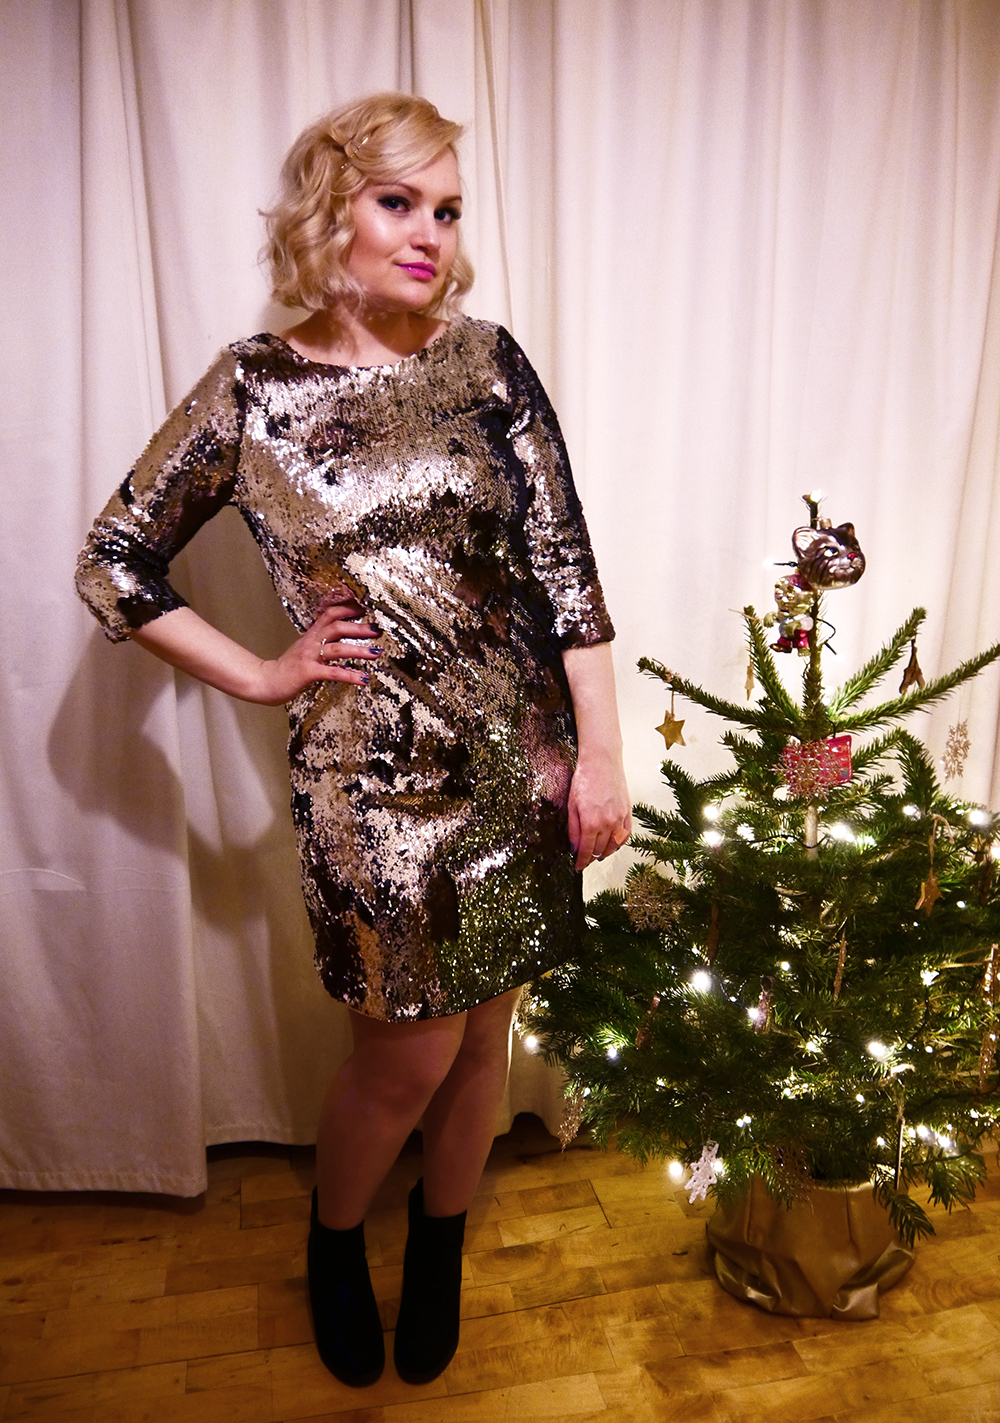 New Years Eve, party outfit, silver sequin dress, sequin mini dress, Scottish blogger, Christmas outfit, winter lighting, how to wear sequins, Christmas look, Fearne Cotton hair, plus size UK blogger Kimberley Grahame